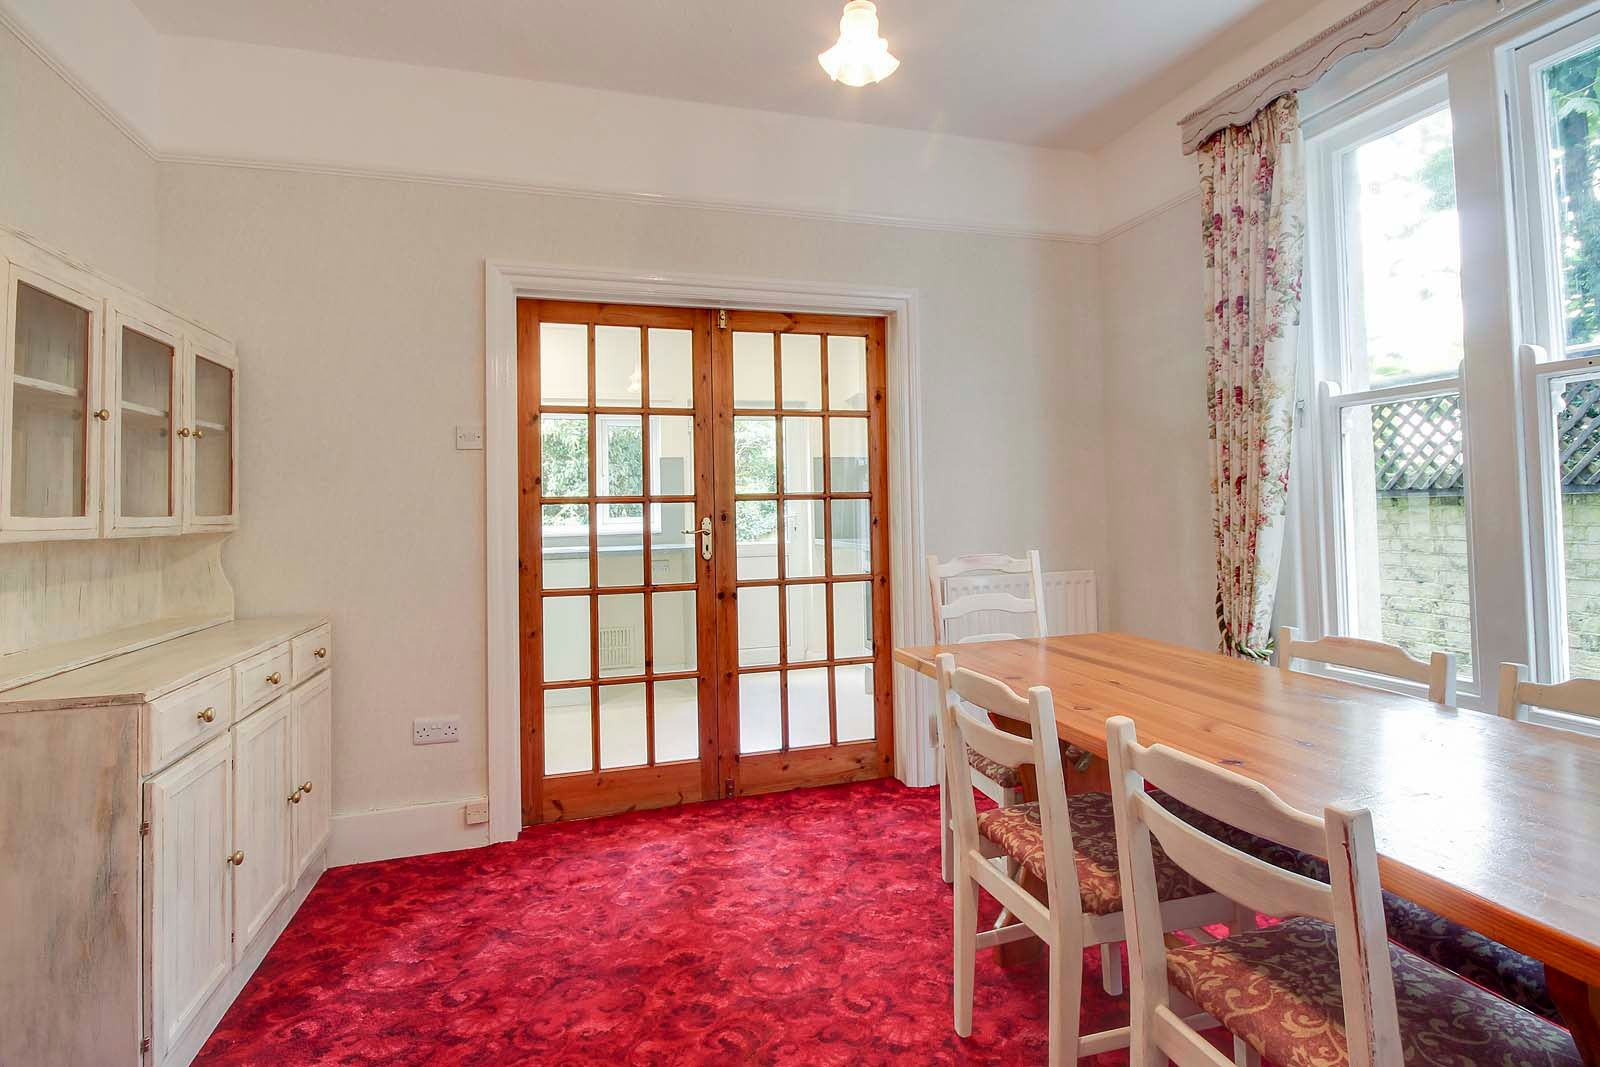 2 bed Apartment to rent in Worthing - Dining room (Property Image 3)